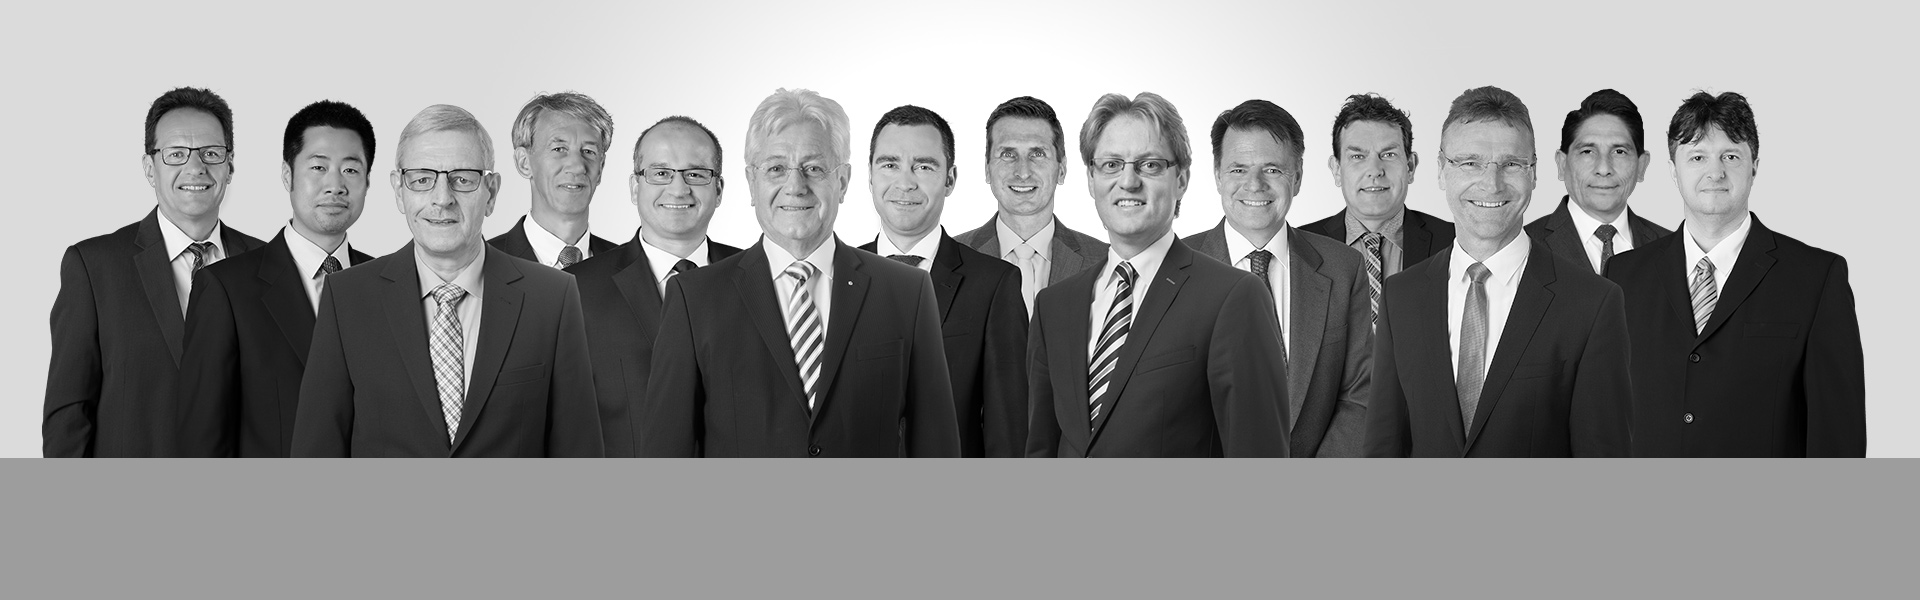 Executive Team and Locations of the JOPP Group